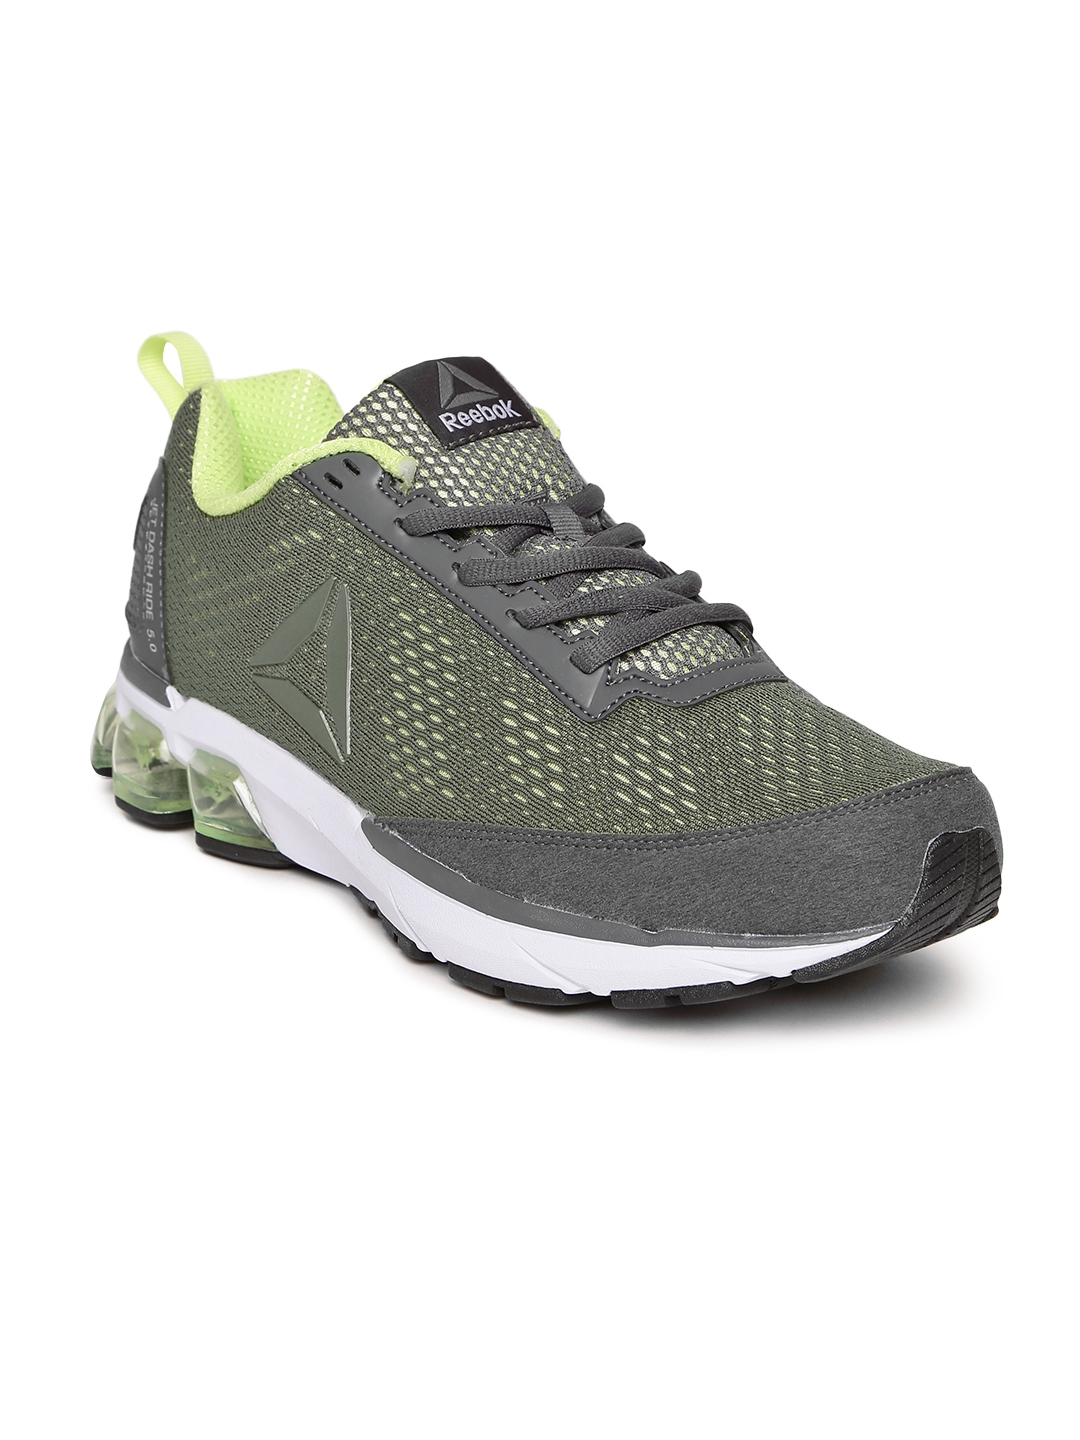 baa86263fa2a Buy Reebok Men Olive Green Jet Dashride 5.0 Running Shoes - Sports ...